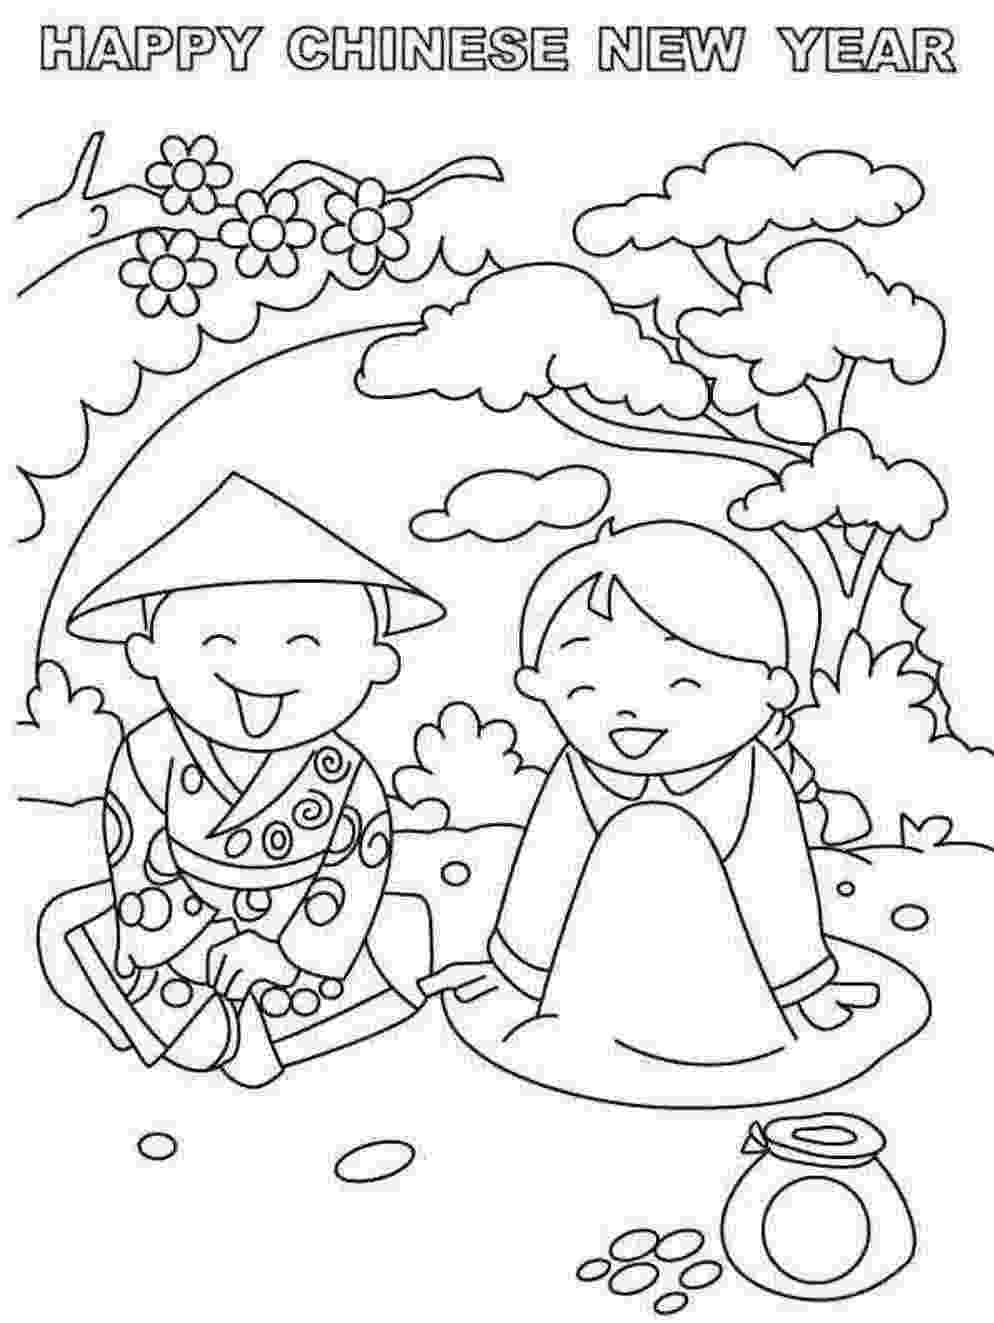 chinese new year coloring pages chinese new year coloring pages to download and print for free coloring chinese new pages year